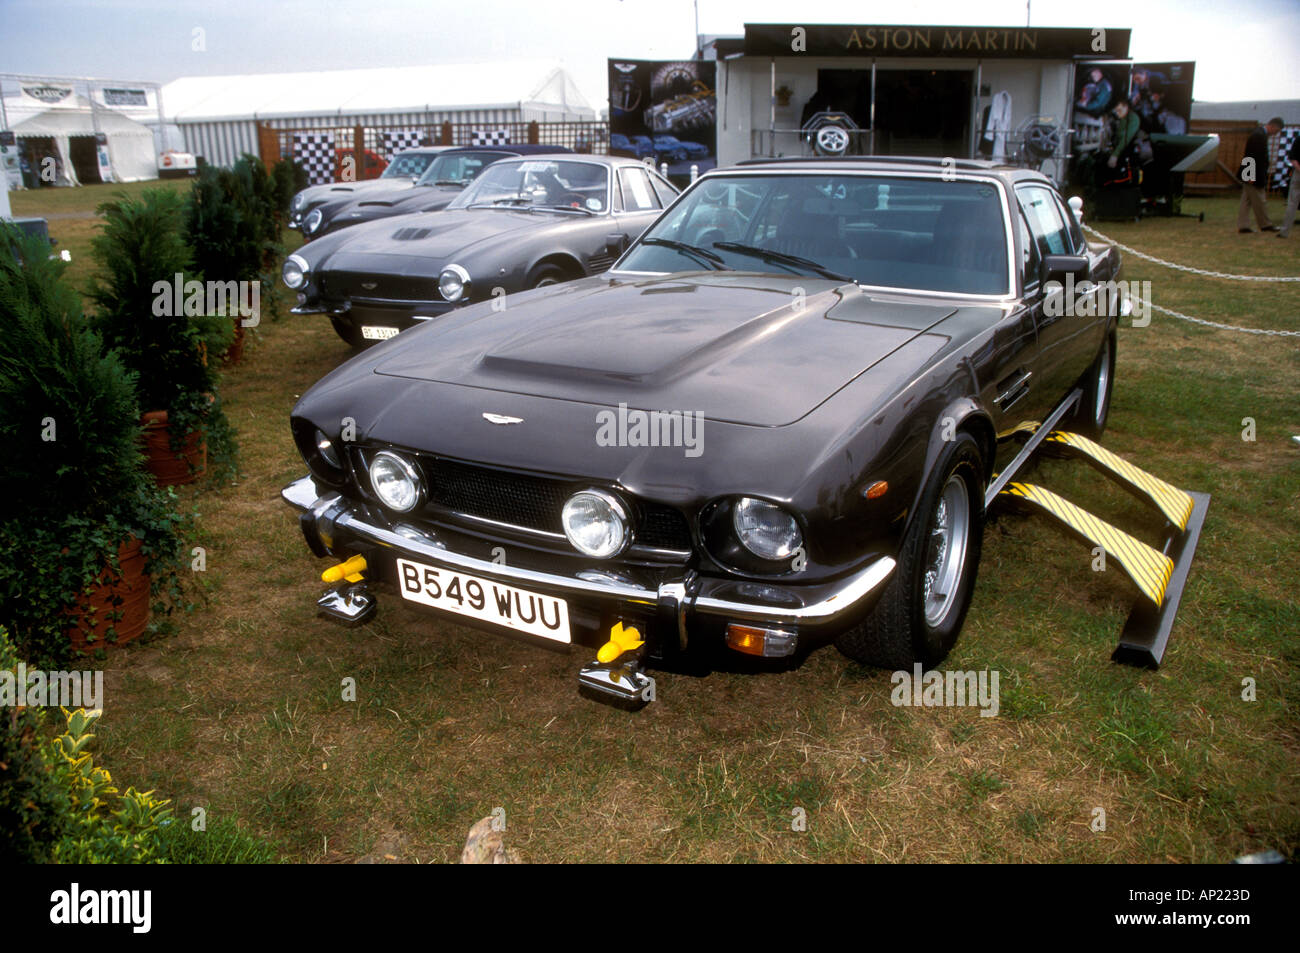 Aston Martin V8 from The Living Daylights - Stock Image